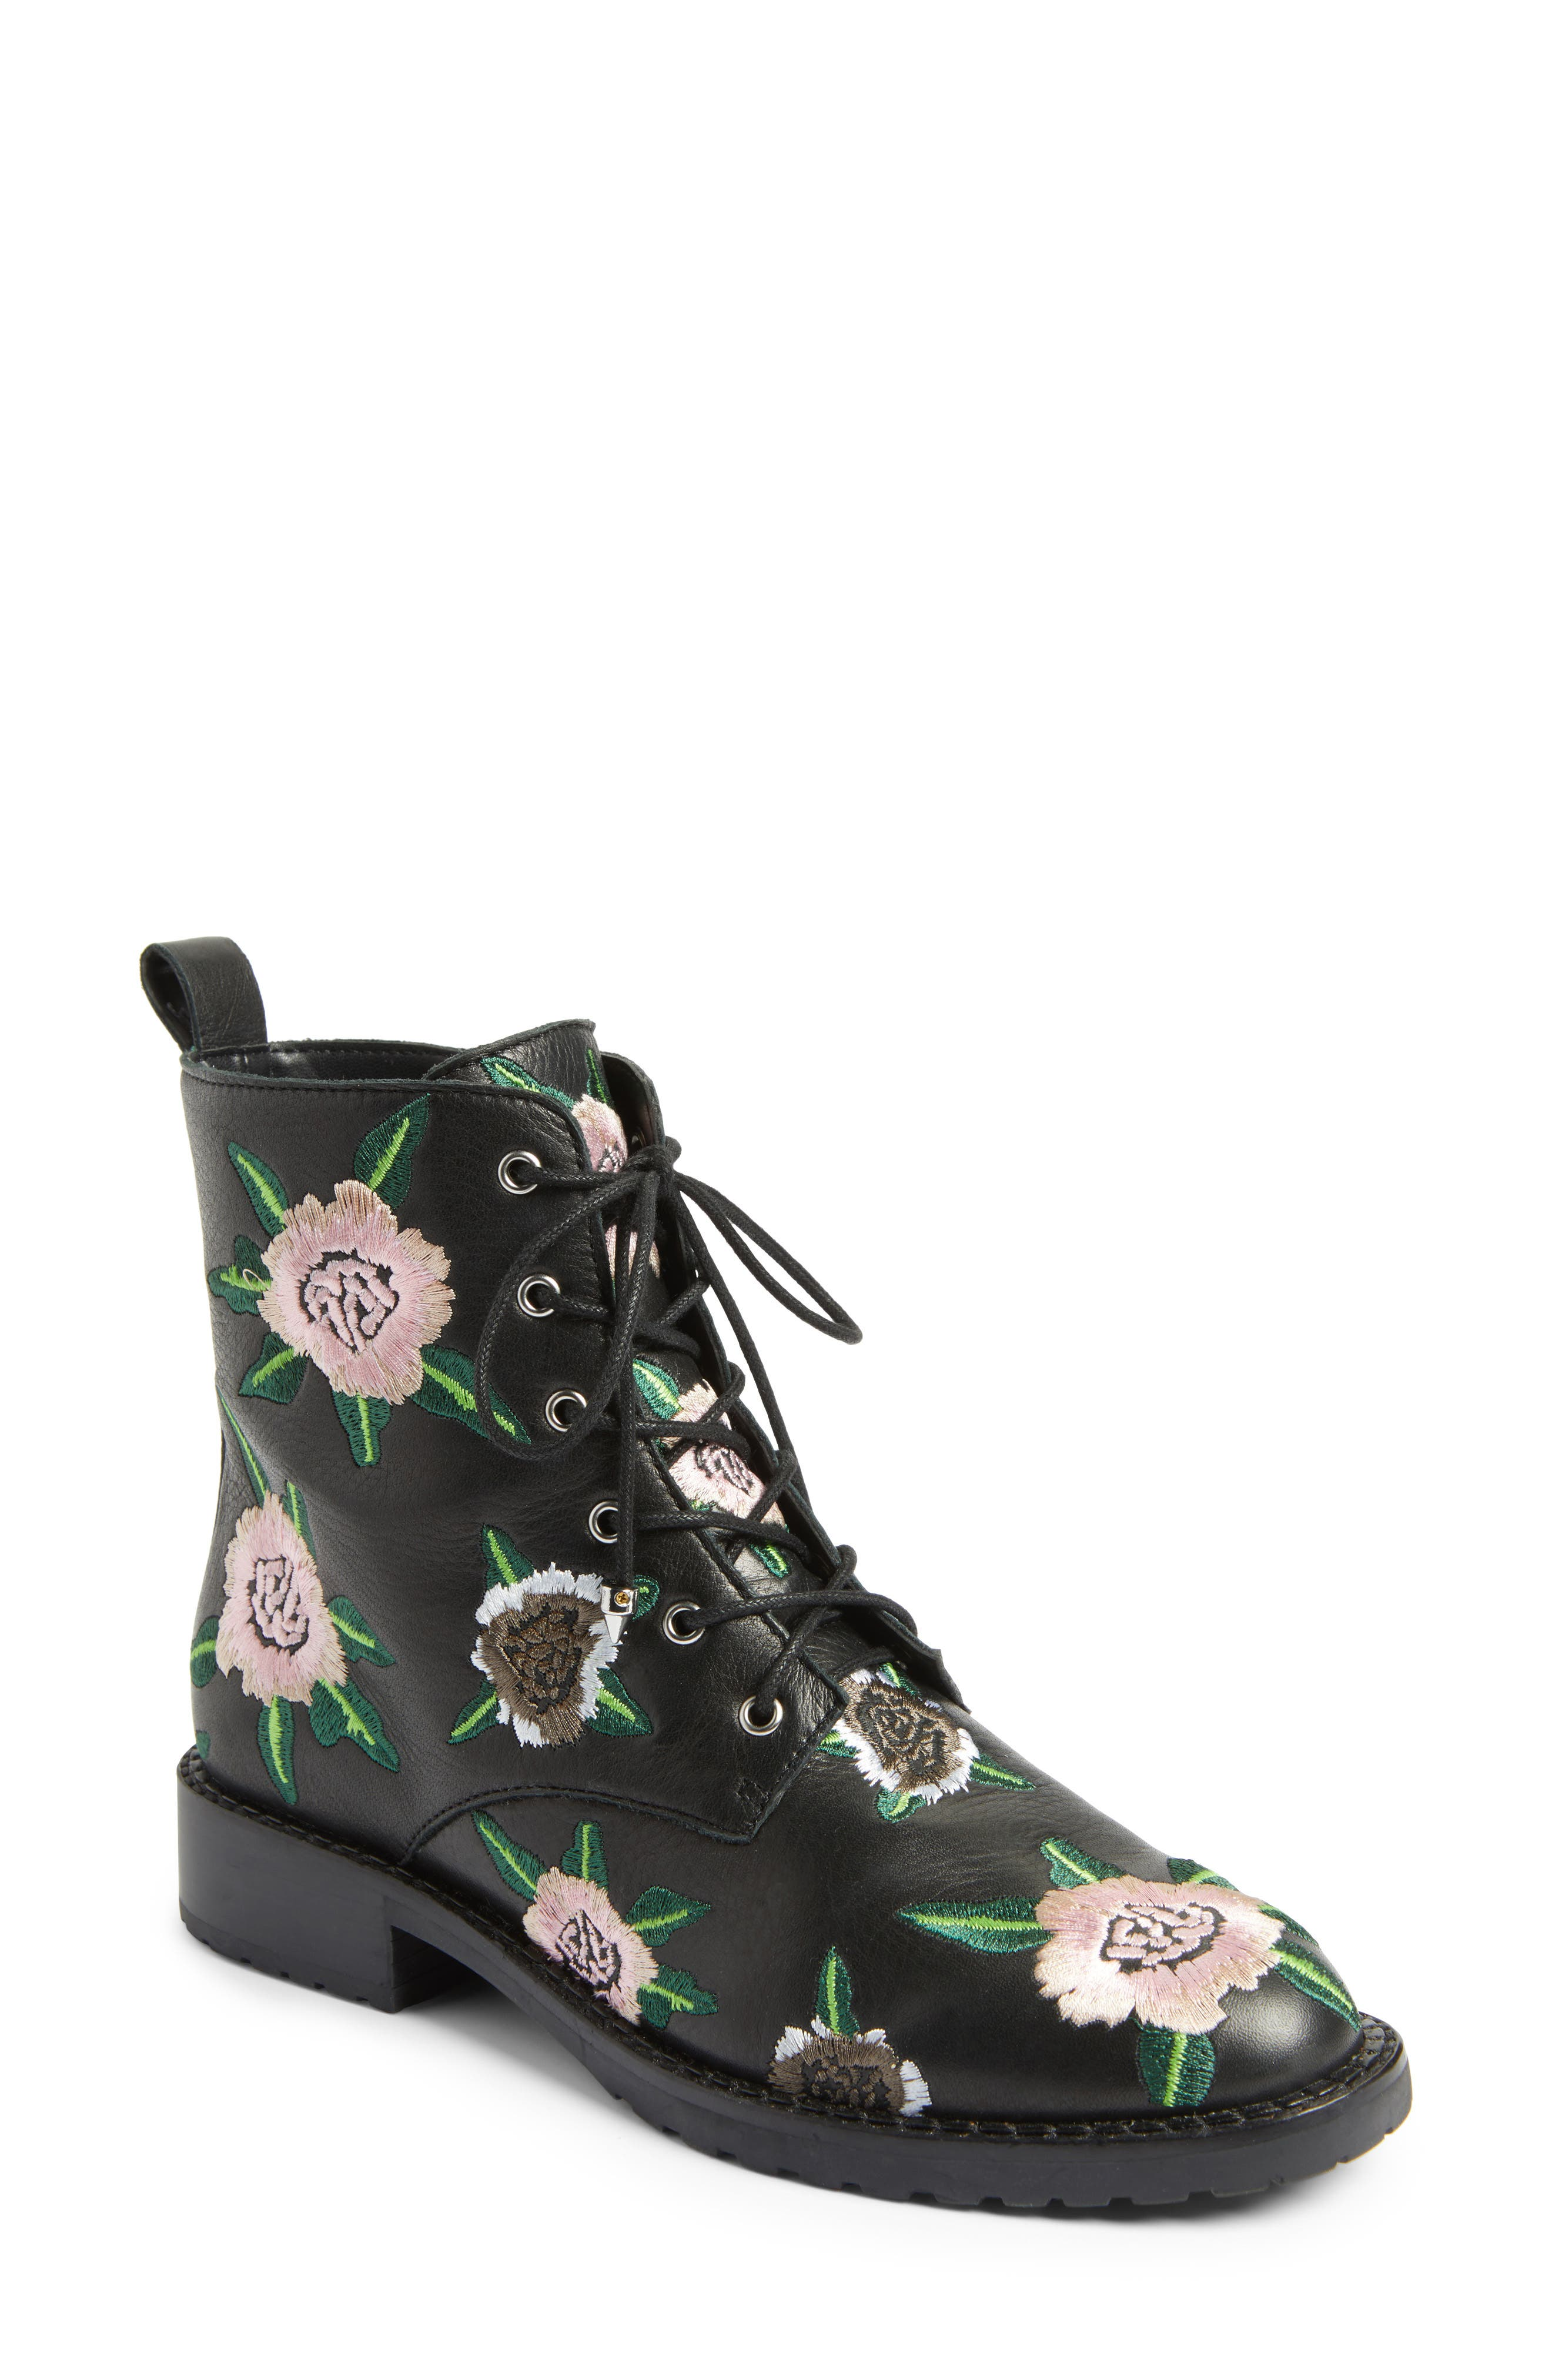 Gerry Embroidered Lace-Up Boot,                         Main,                         color, 001